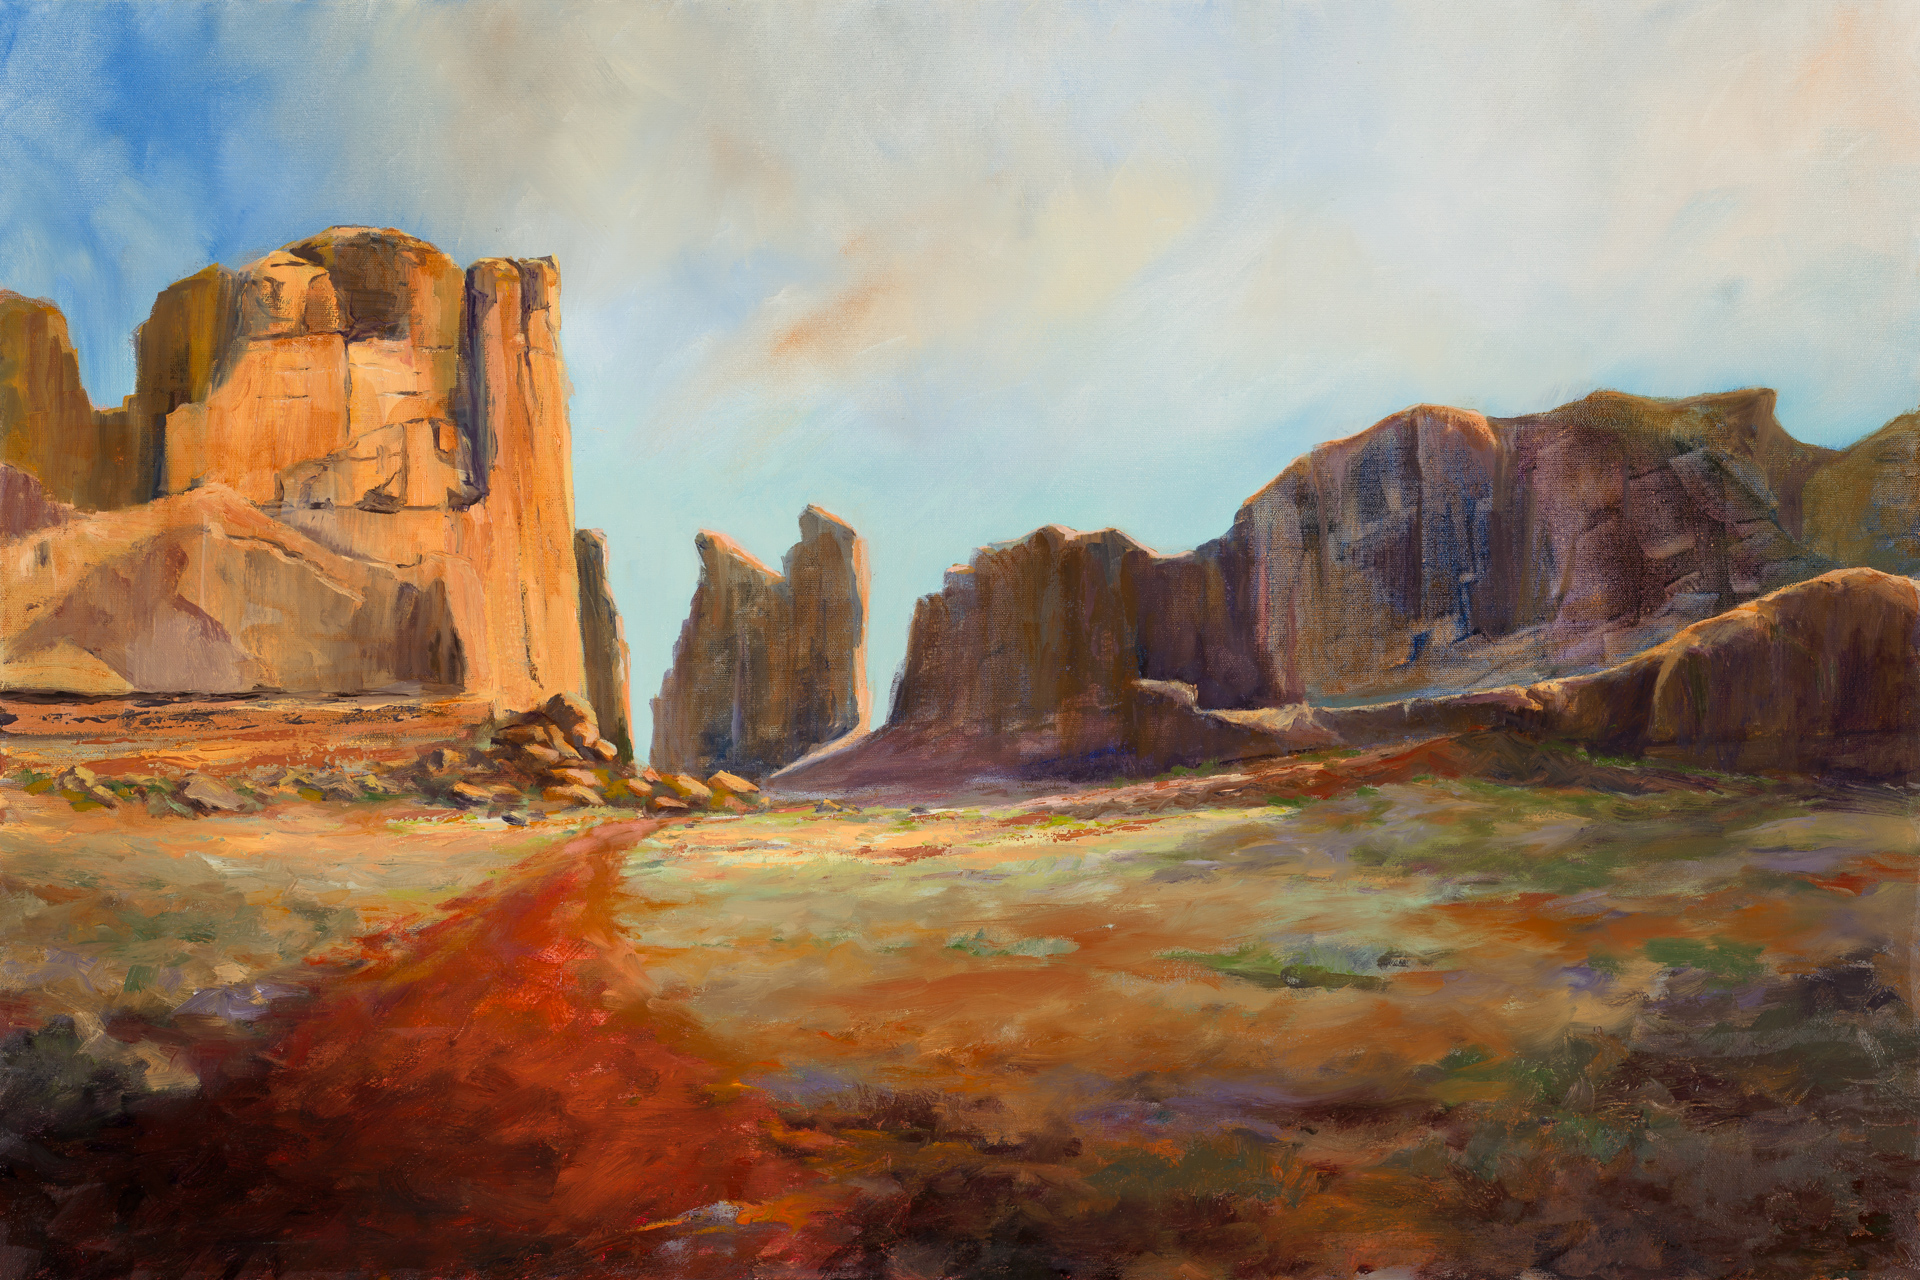 Cliffs of Moab 24x36 oil on canvas $2395.00